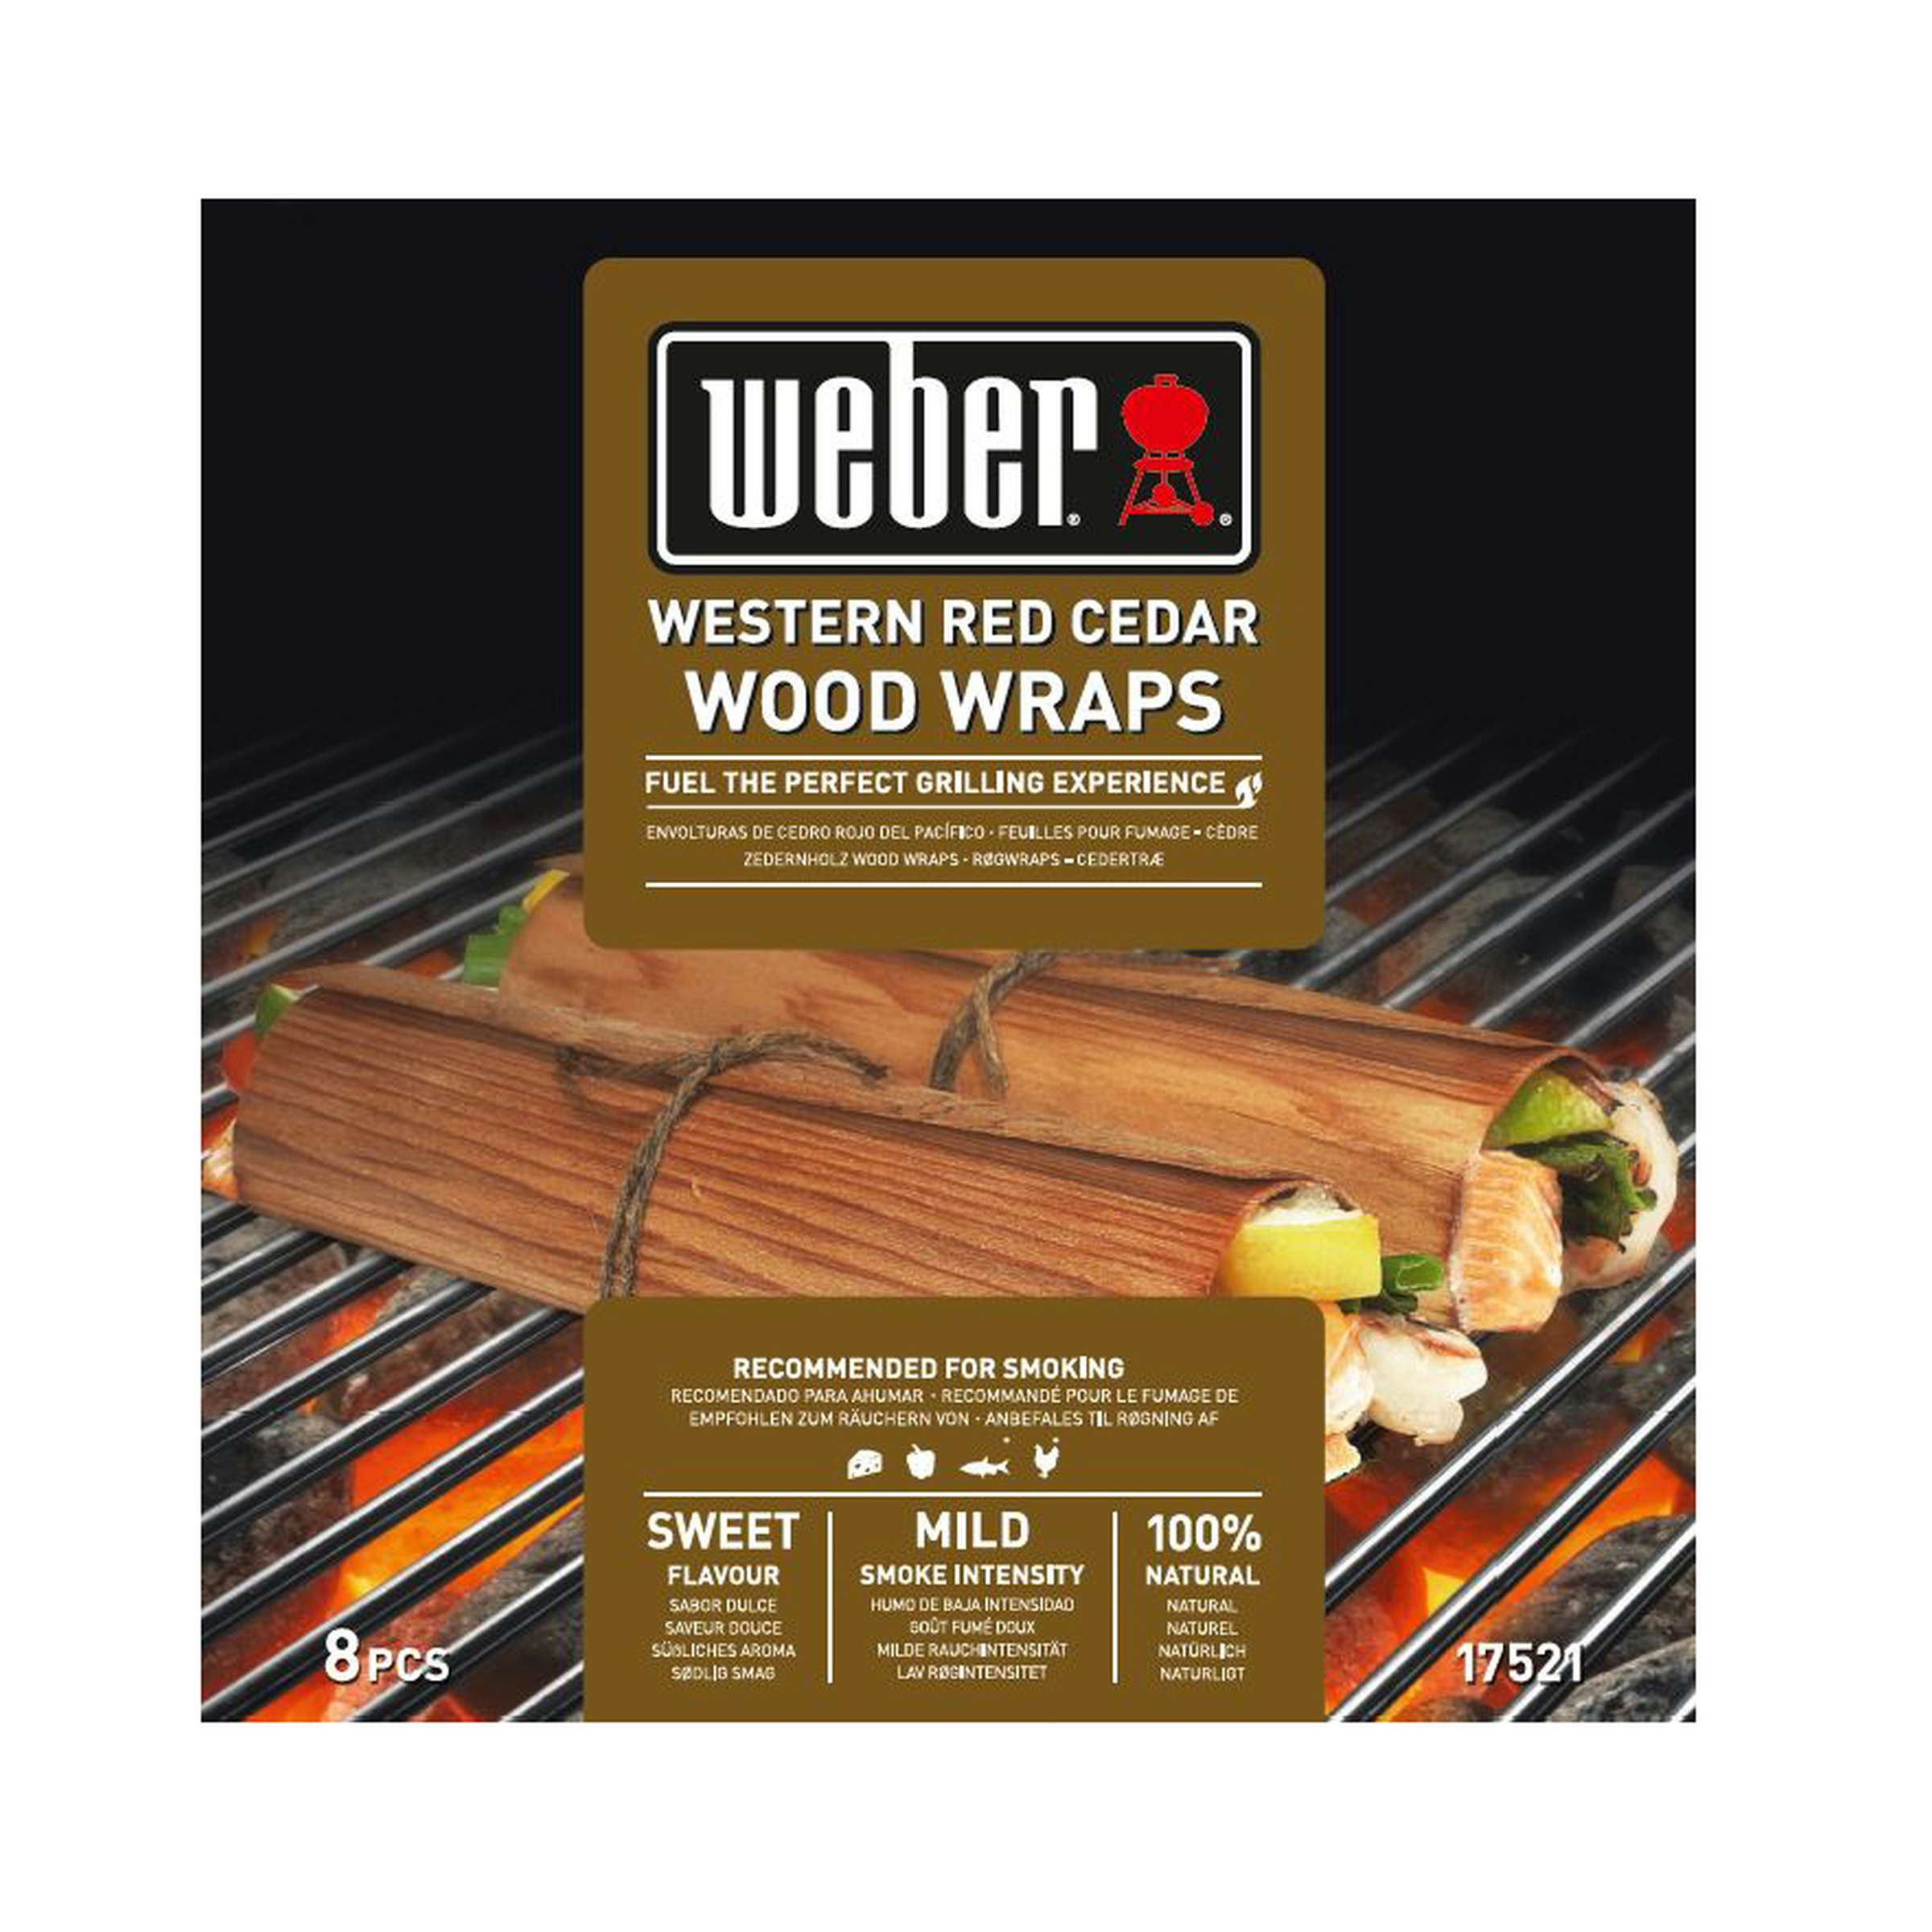 Weber Wood wraps western red cedar